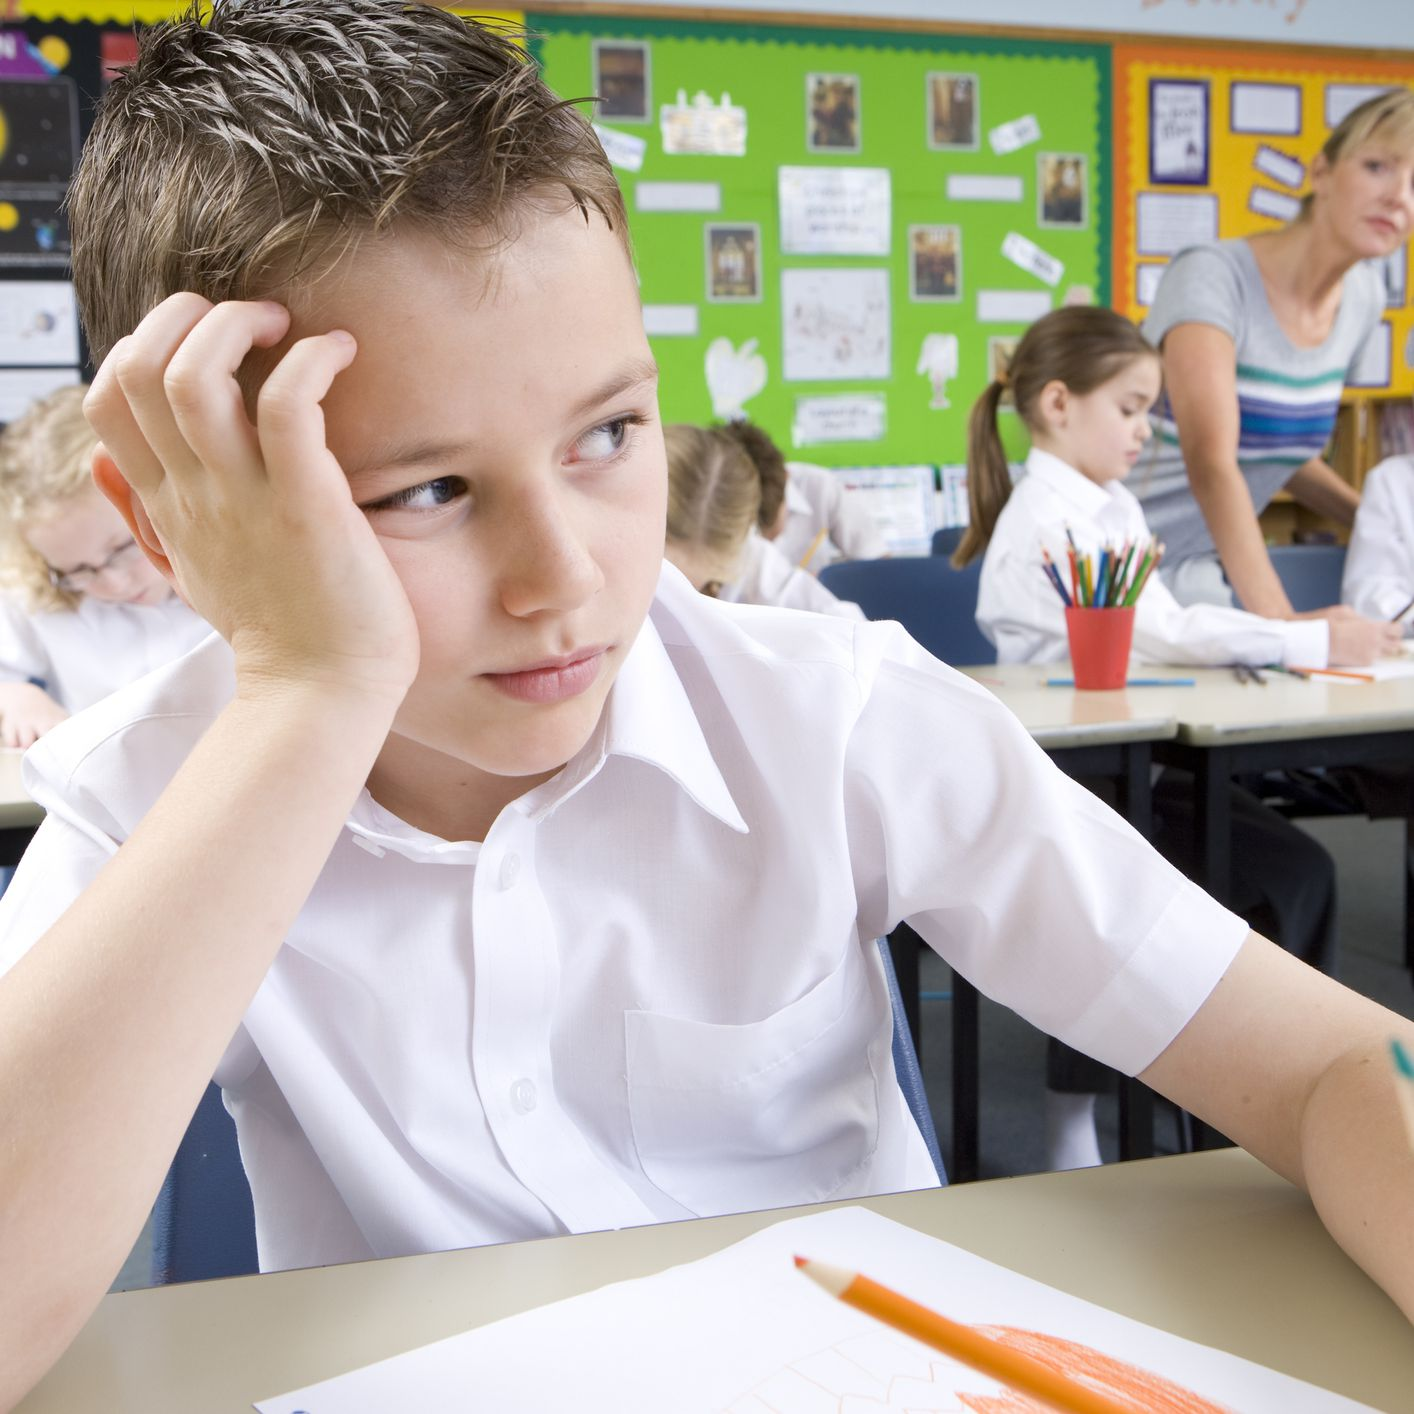 Understanding Attention Deficit Disorders (ADD/ADHD)